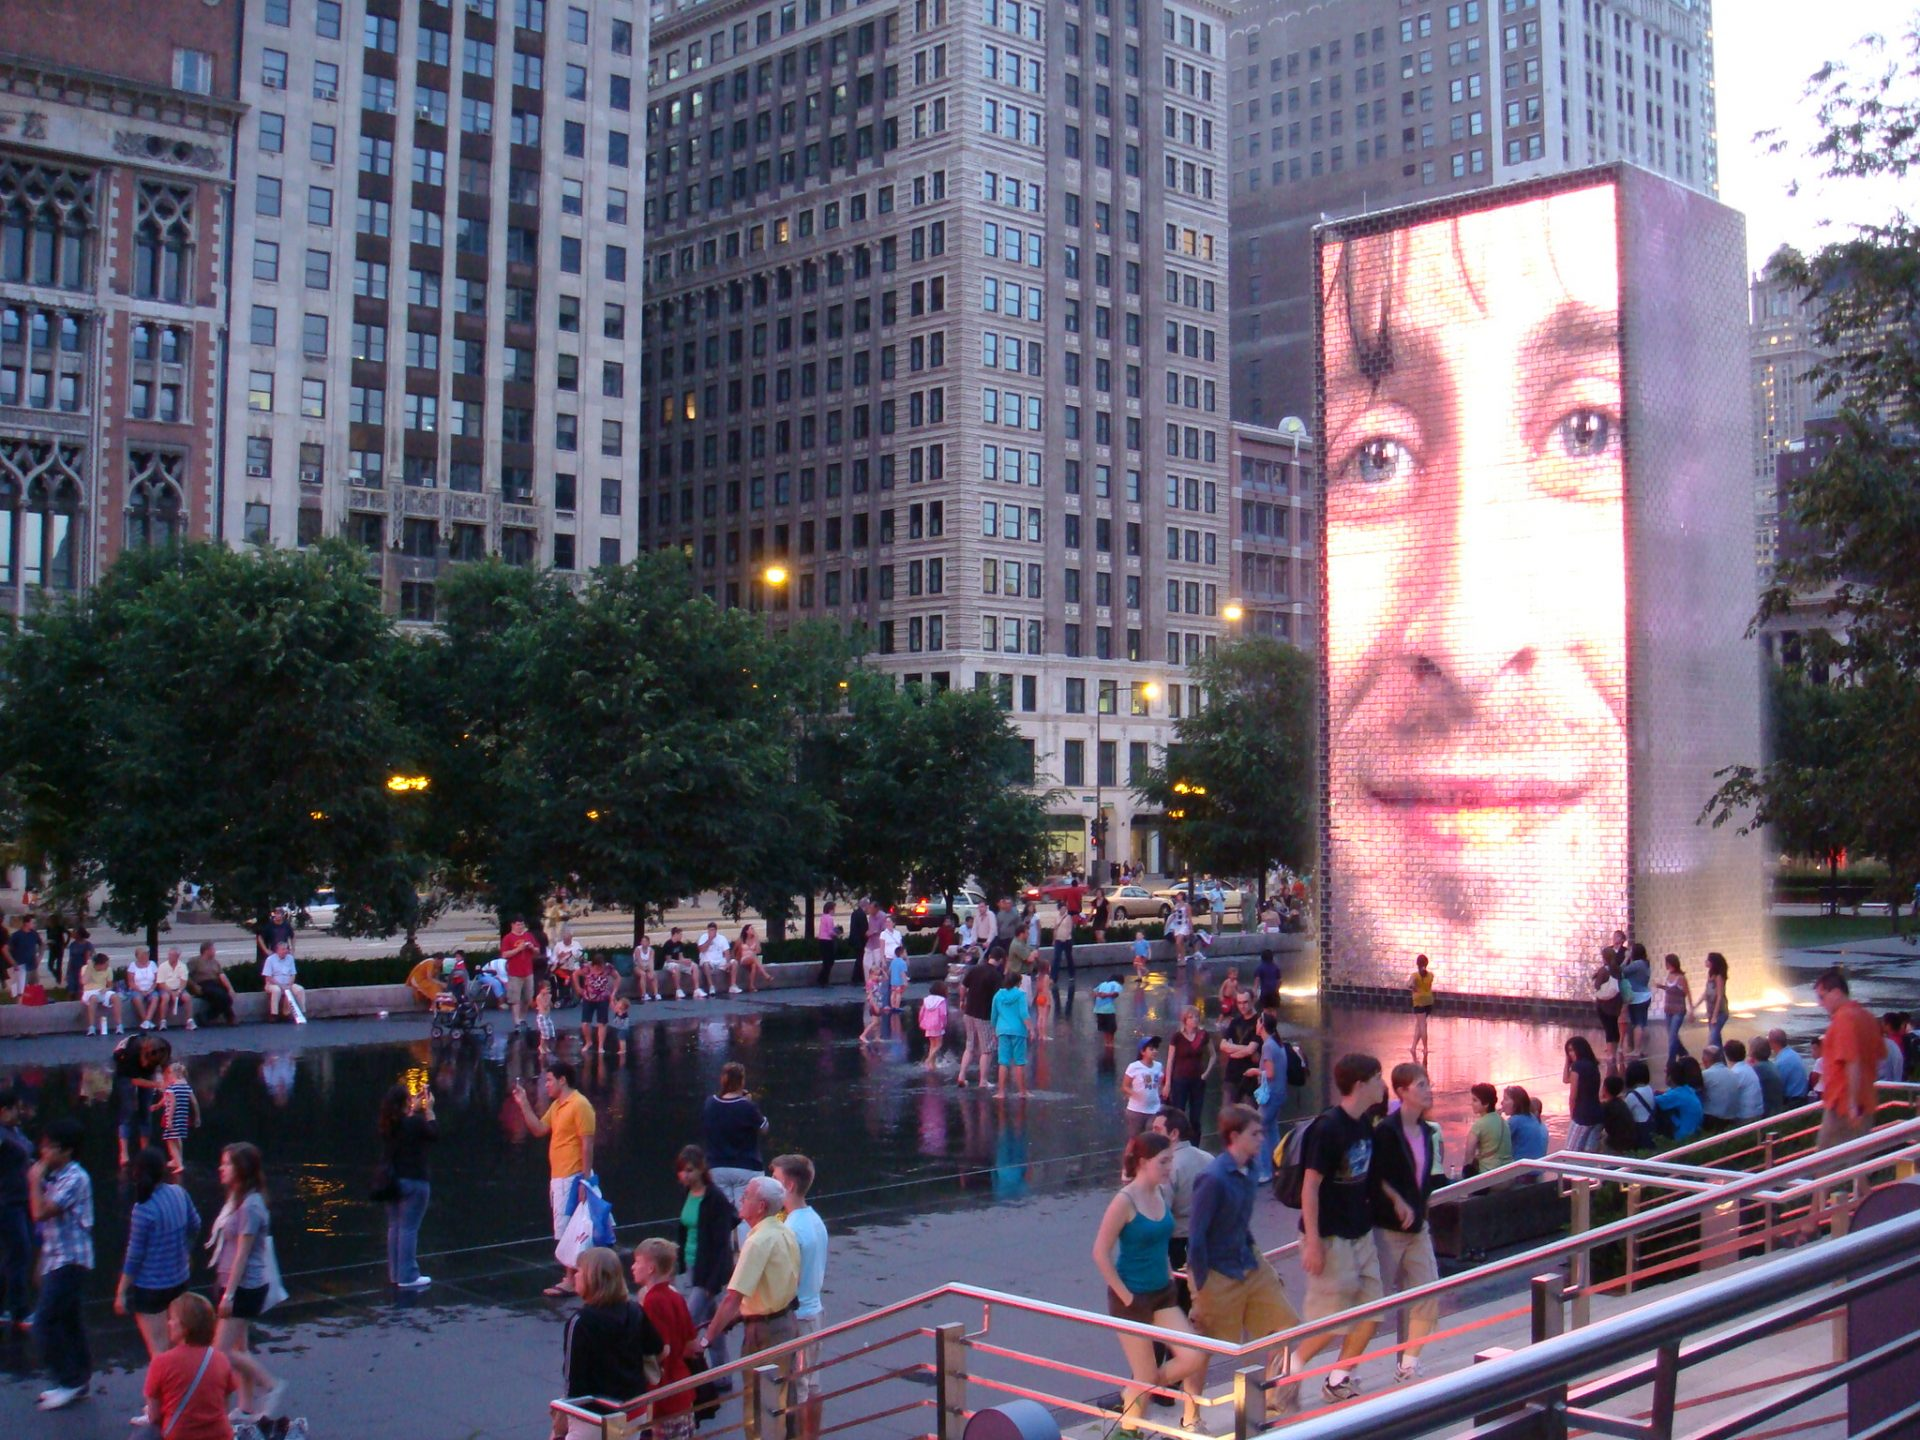 Crown Fountain - splashing fun for kids in Millennium Park